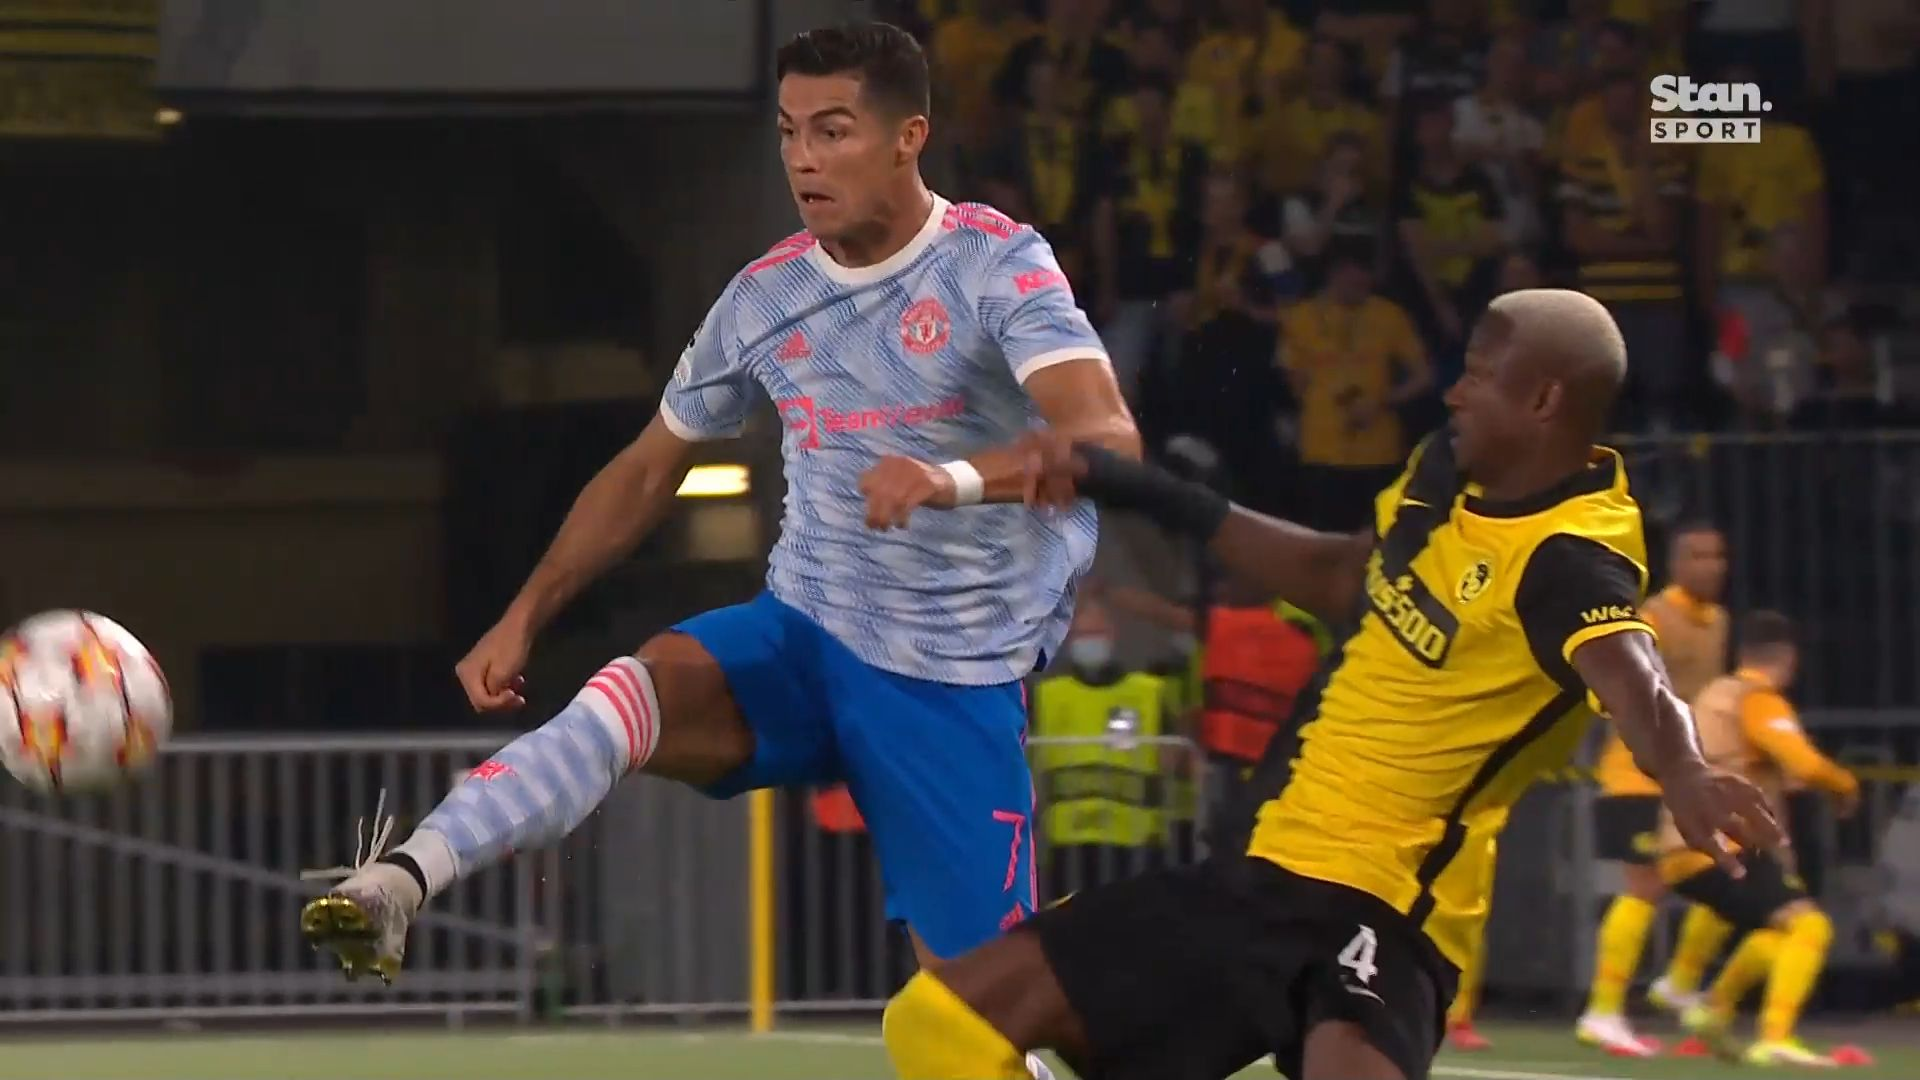 Ronaldo scores but Man United beaten 2-1 at Young Boys after teammate's clanger